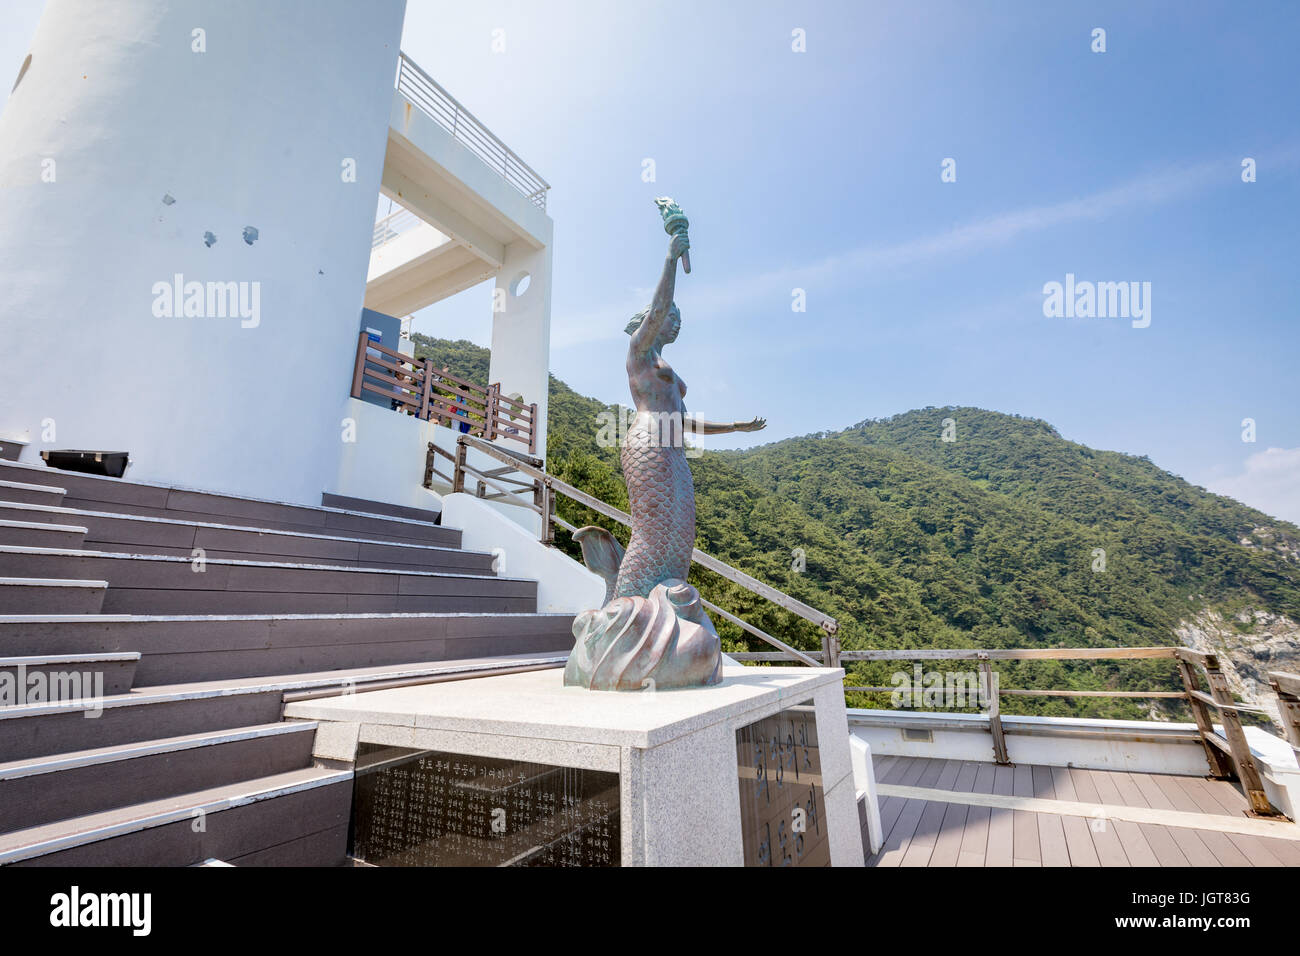 Jun 21, 2017 Mermaid Statue near the Yeongdo Lighthouse at ...